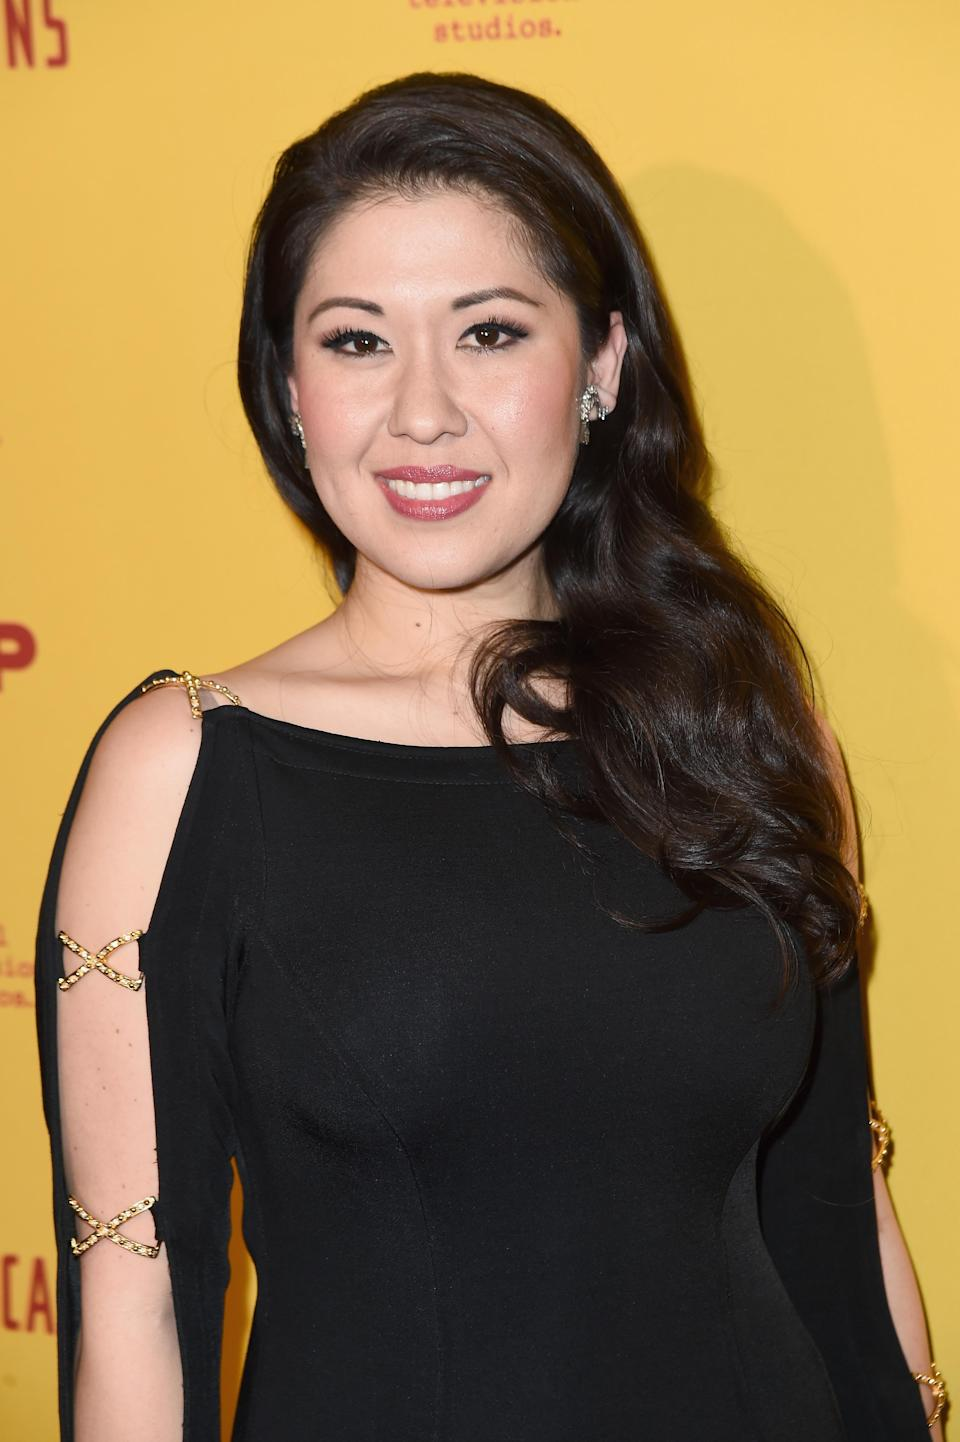 Ruthie Ann Miles in February 2017. (Photo: Nicholas Hunt/Getty Images)